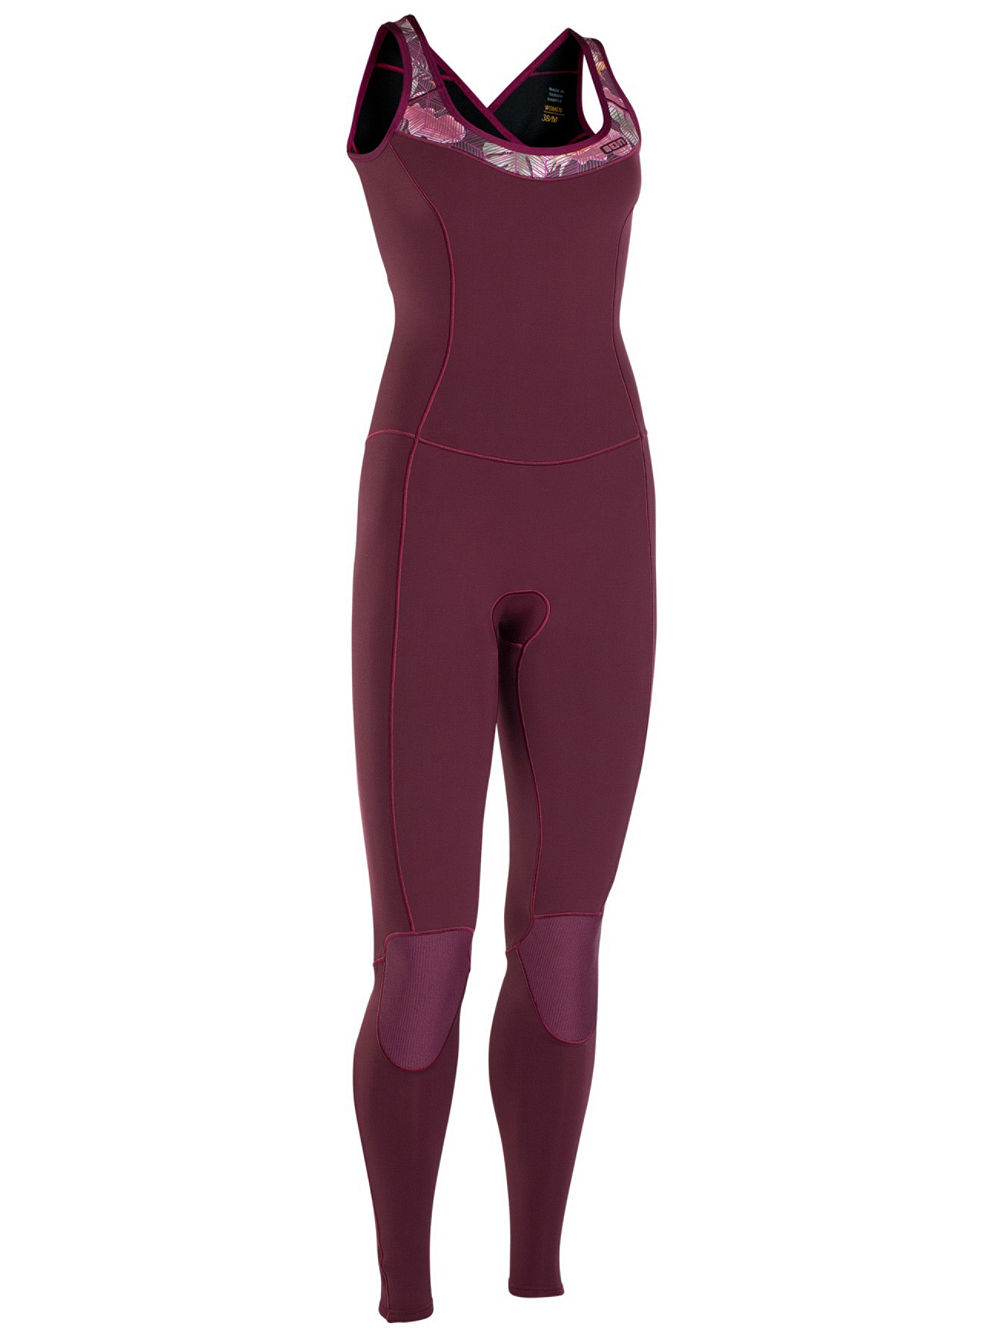 Muse Long Jane 1.5 DL Wetsuit